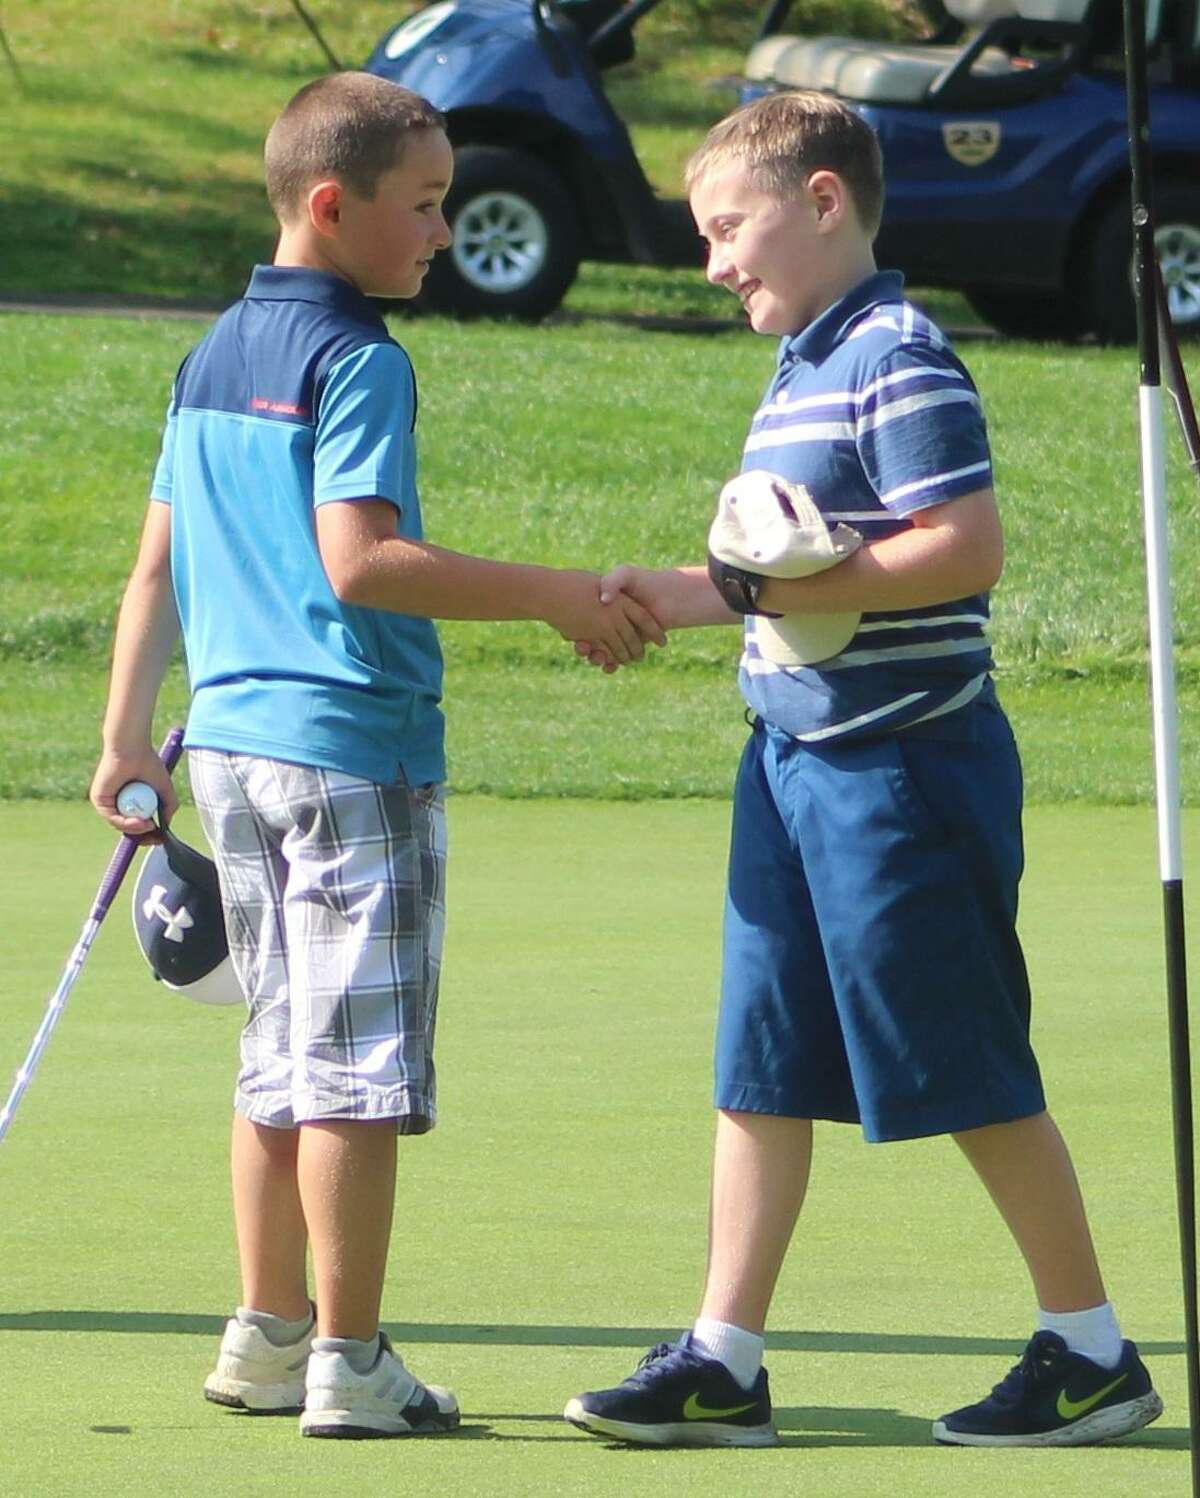 Max Pawlowski, left, andAidan Henn share a congratulatory handshake after finishing up on the 18th green at the Fran McCarthy Junior Golf Tournament at Richter Park Golf Course in Danbury Aug. 21, 2017.